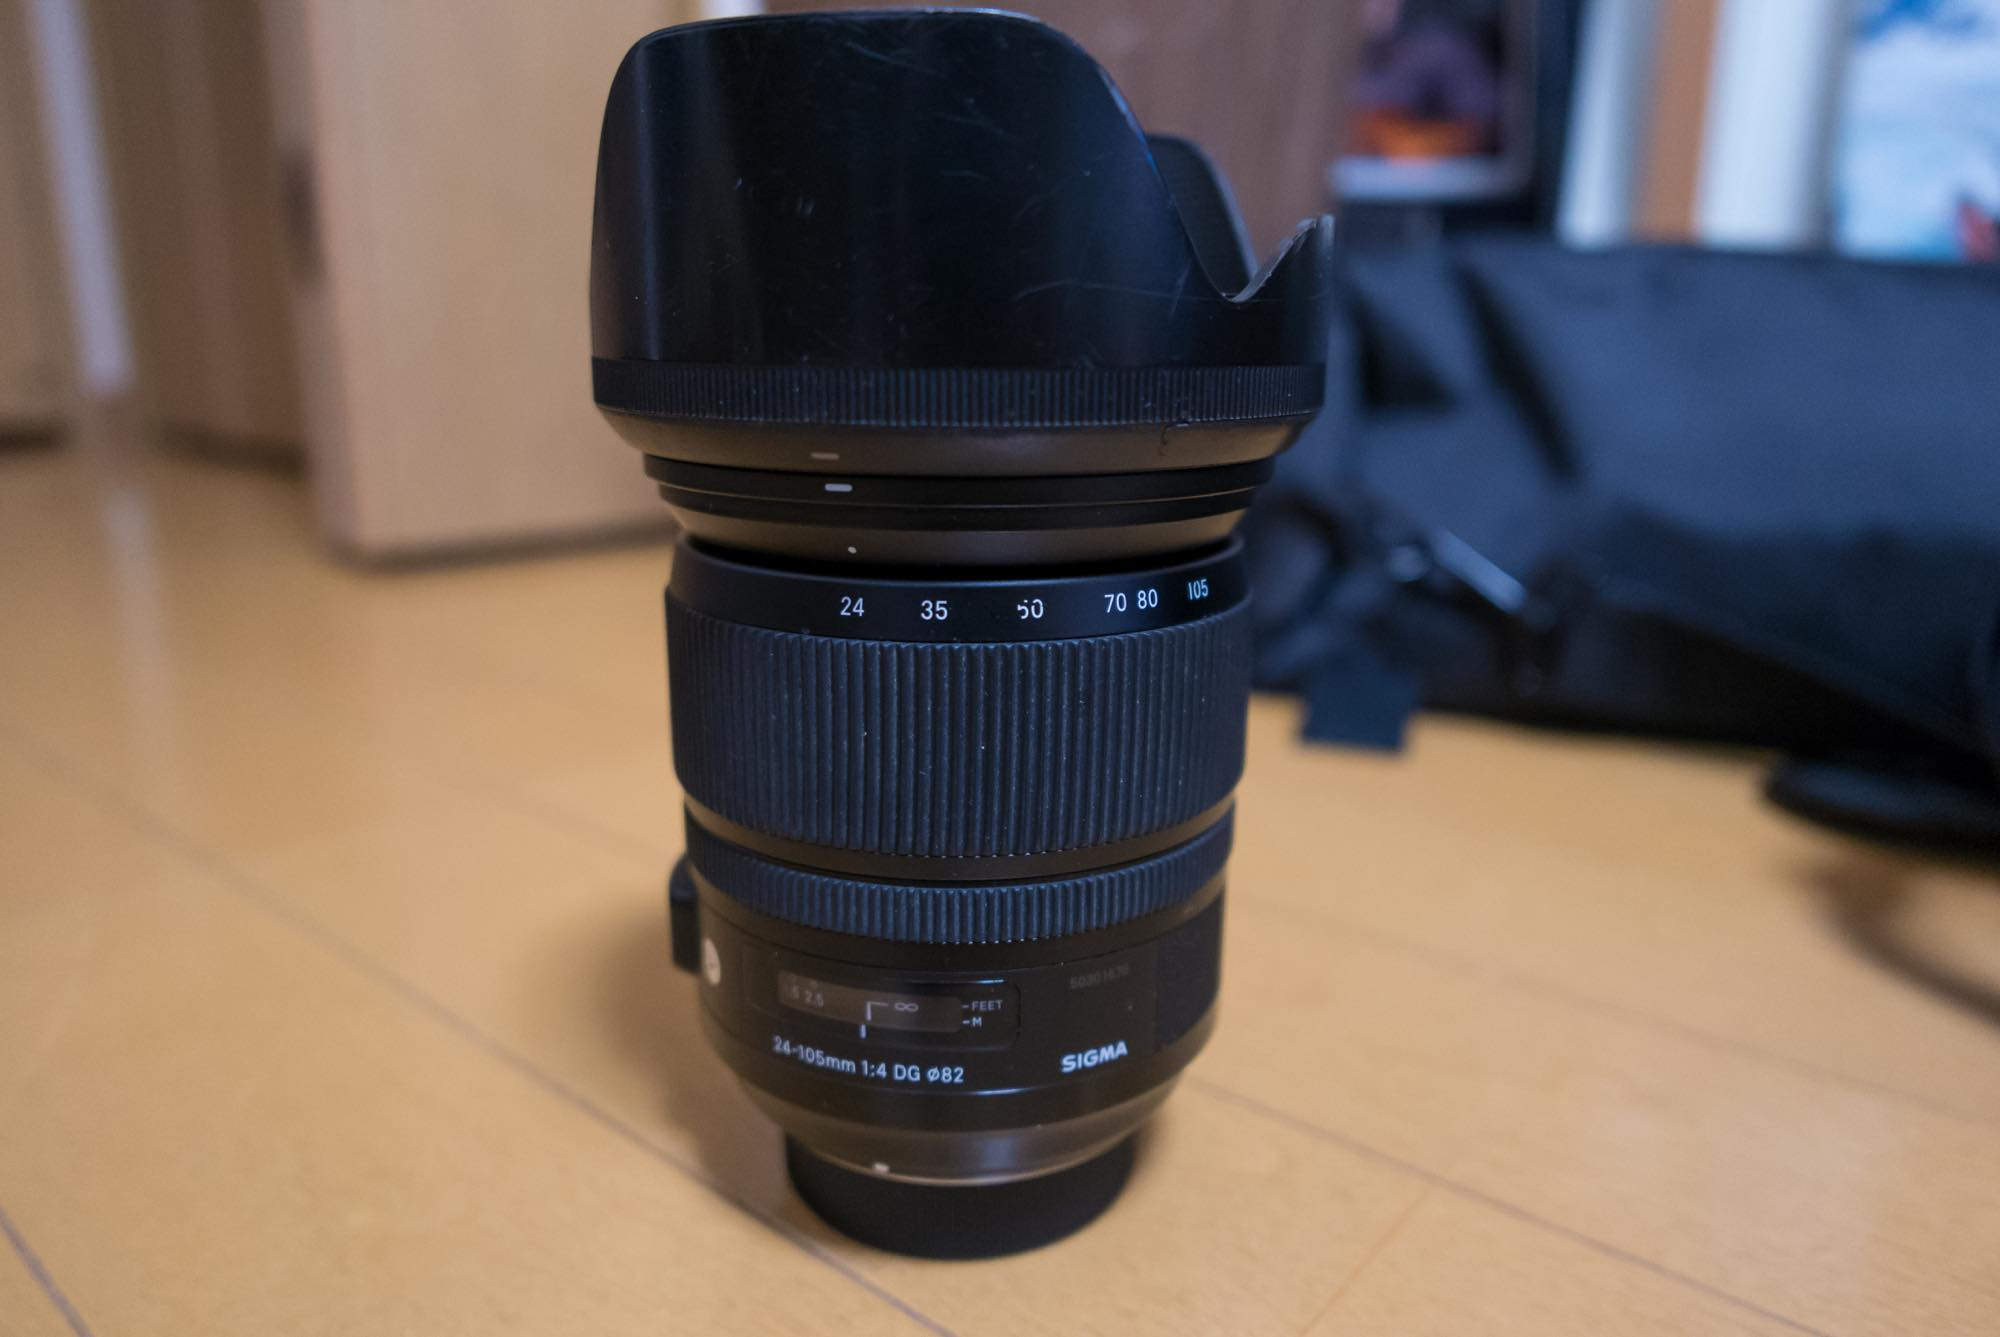 sigma art 24-105mm 本体